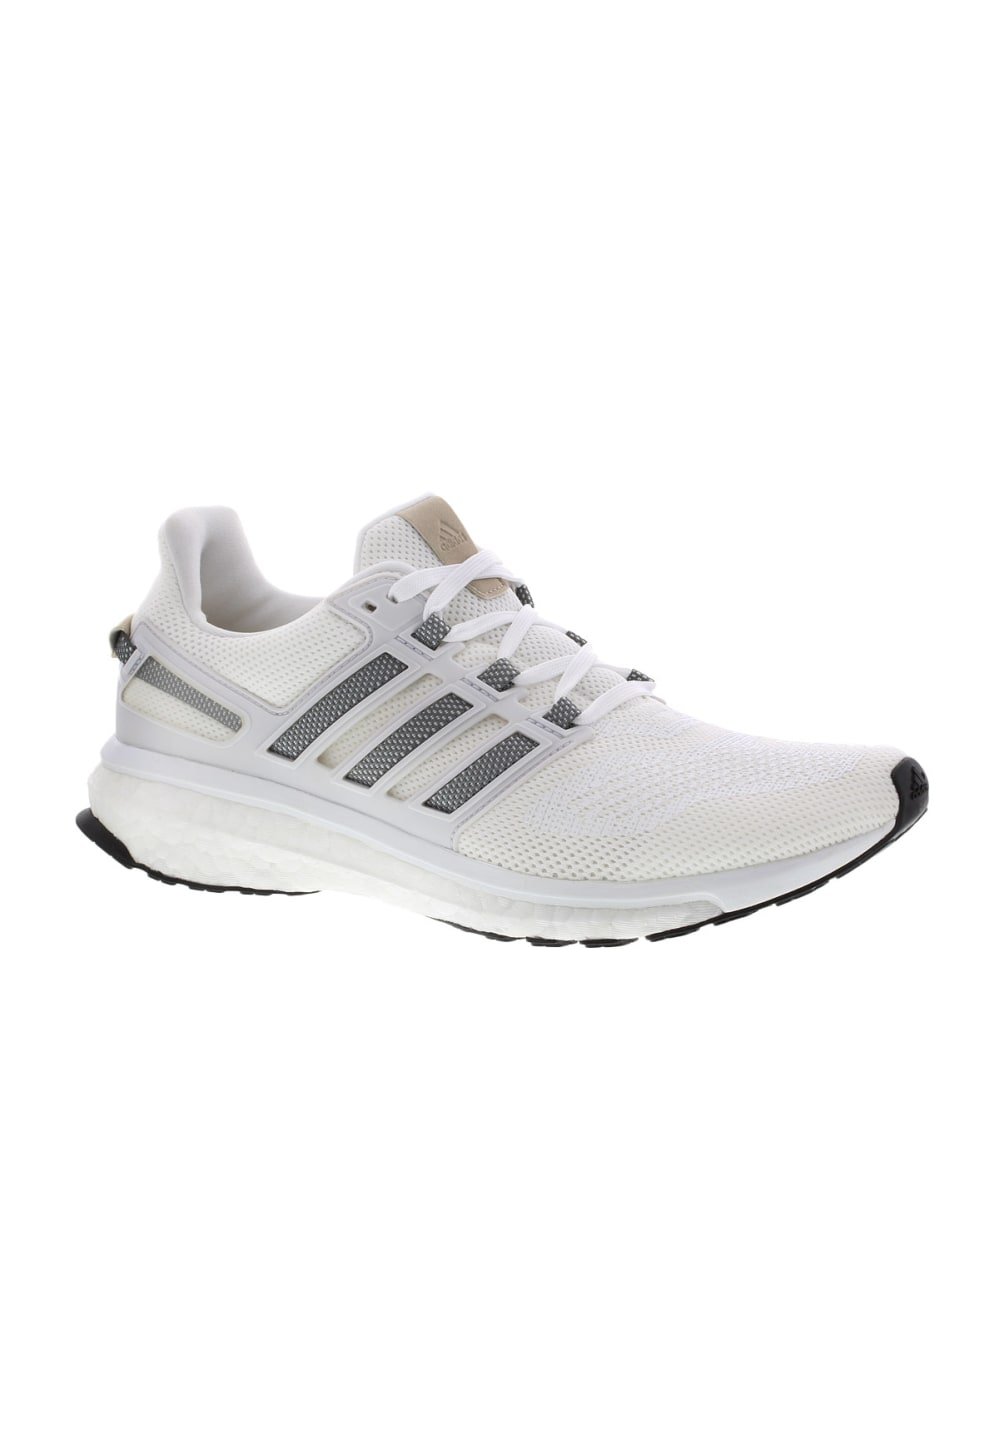 adidas Energy Boost 3 - Running shoes for Women - White